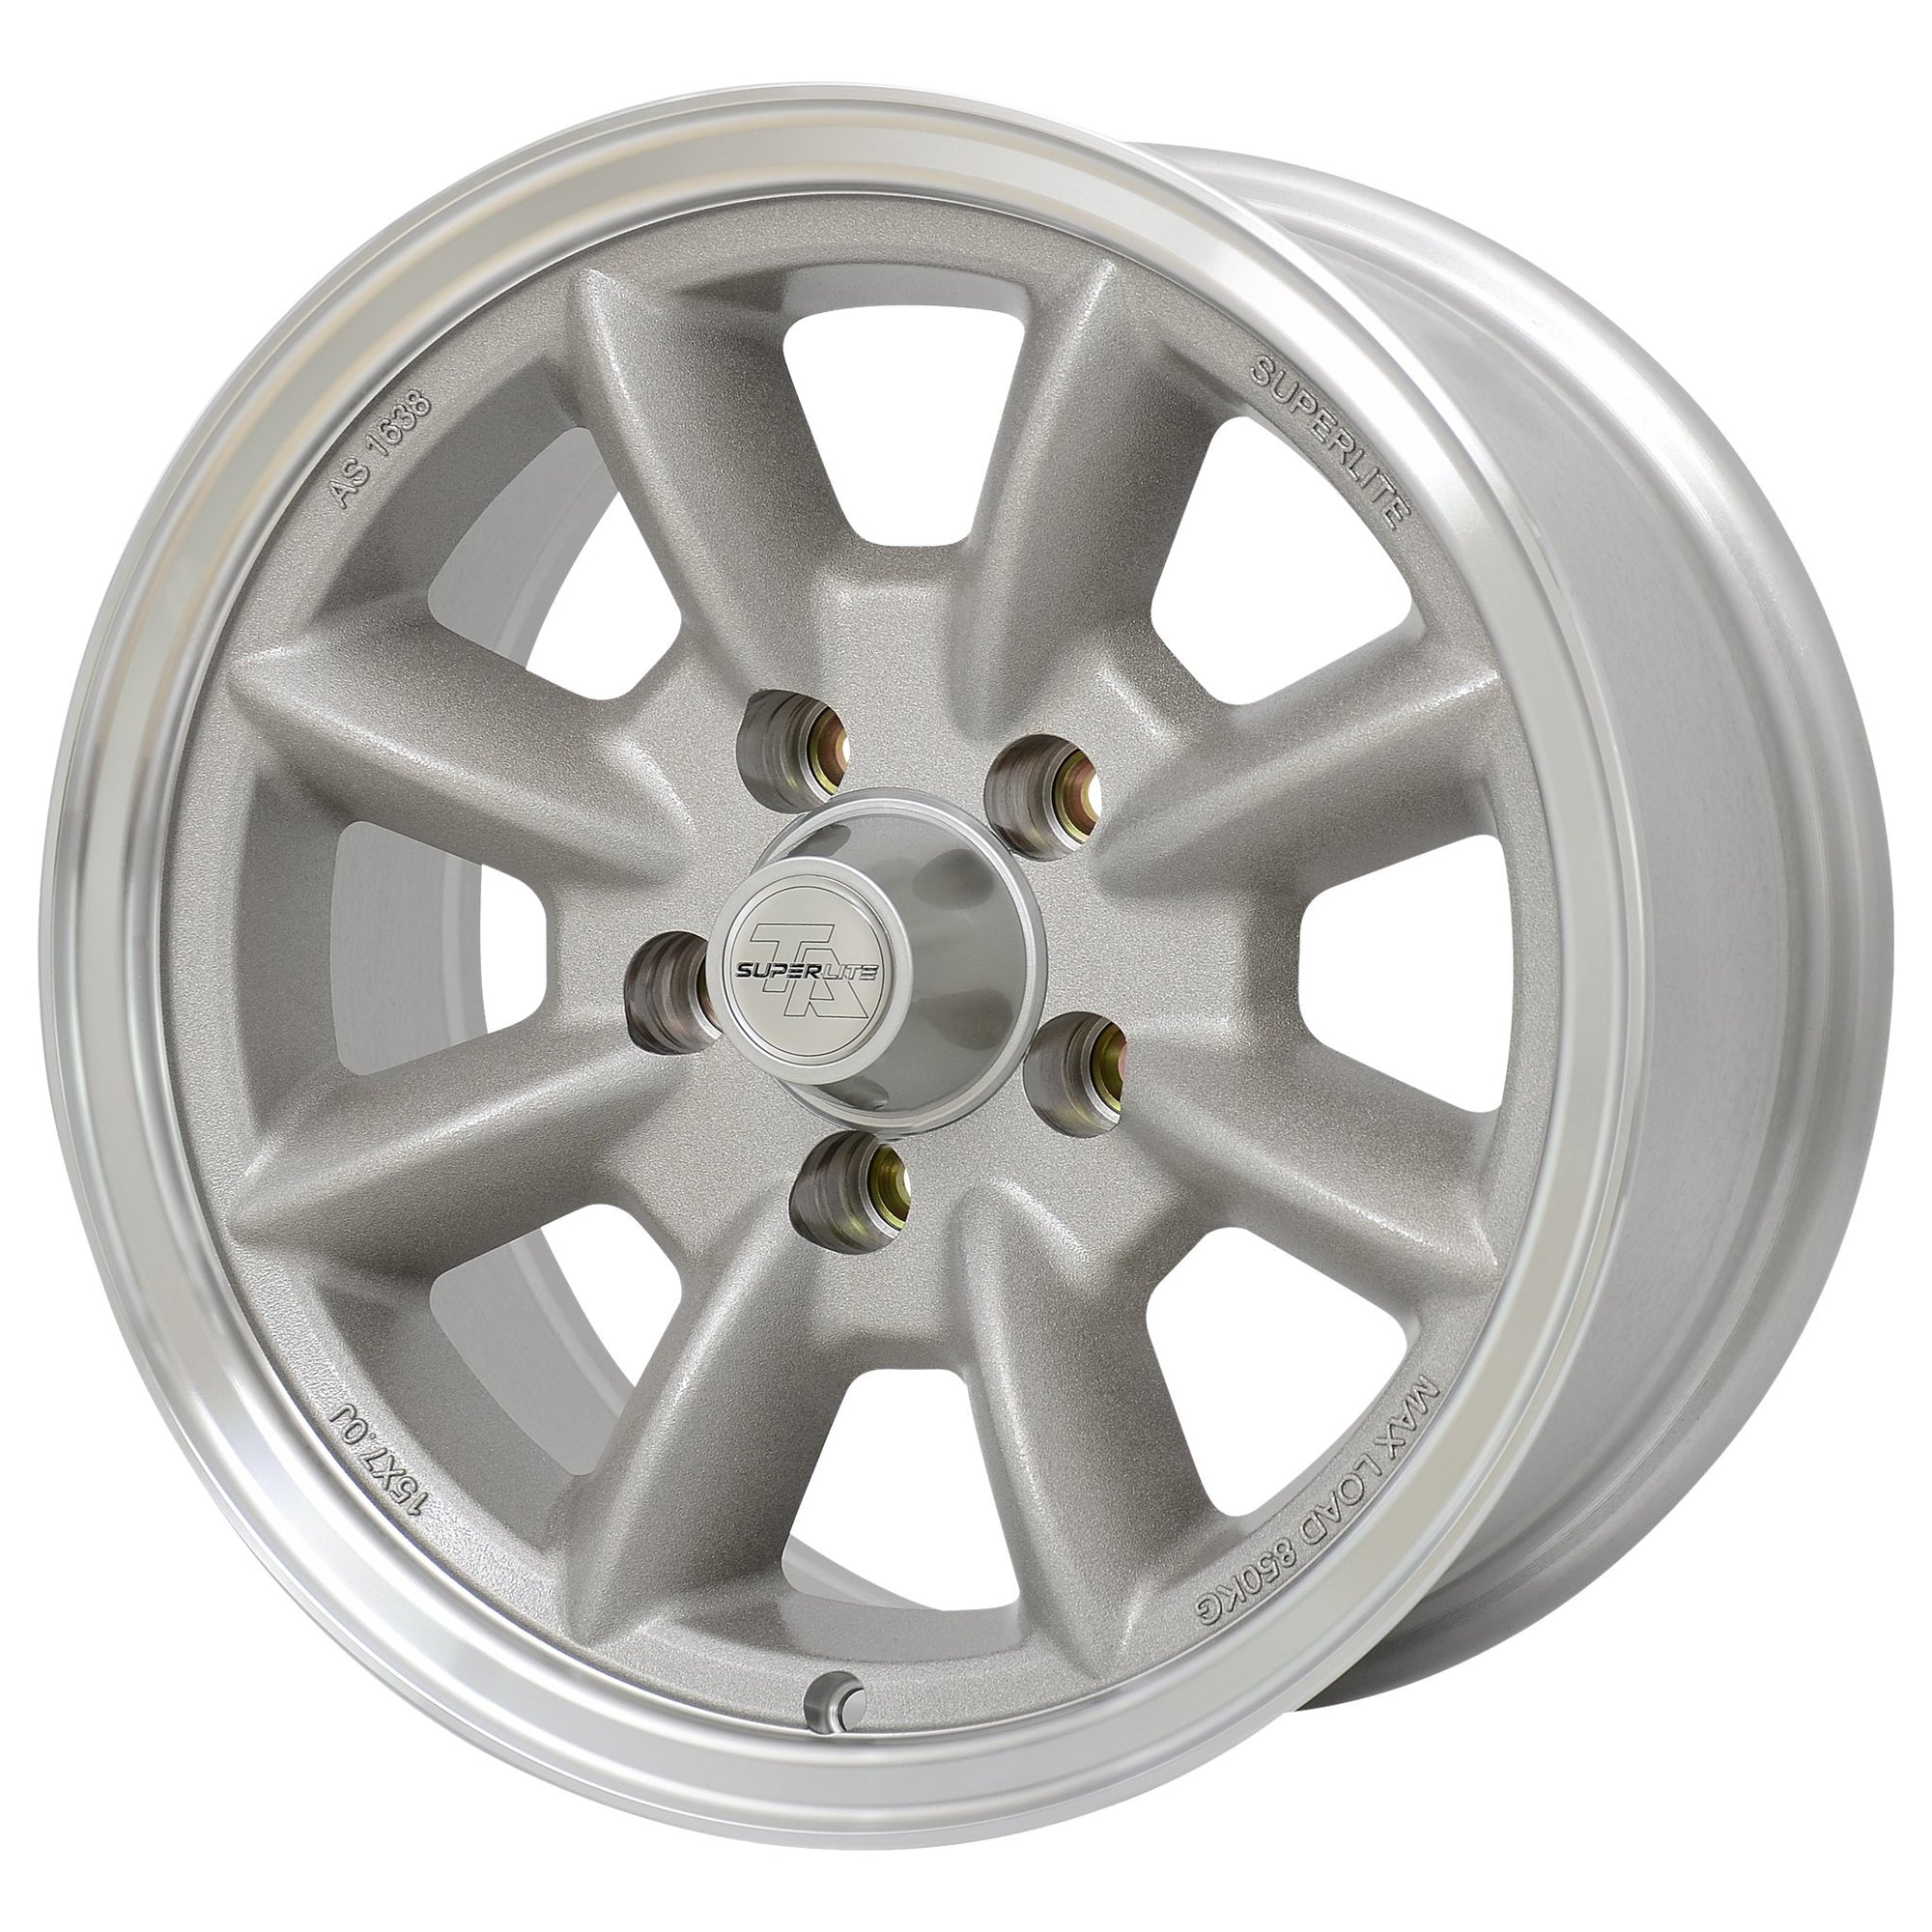 trans am racing wheels